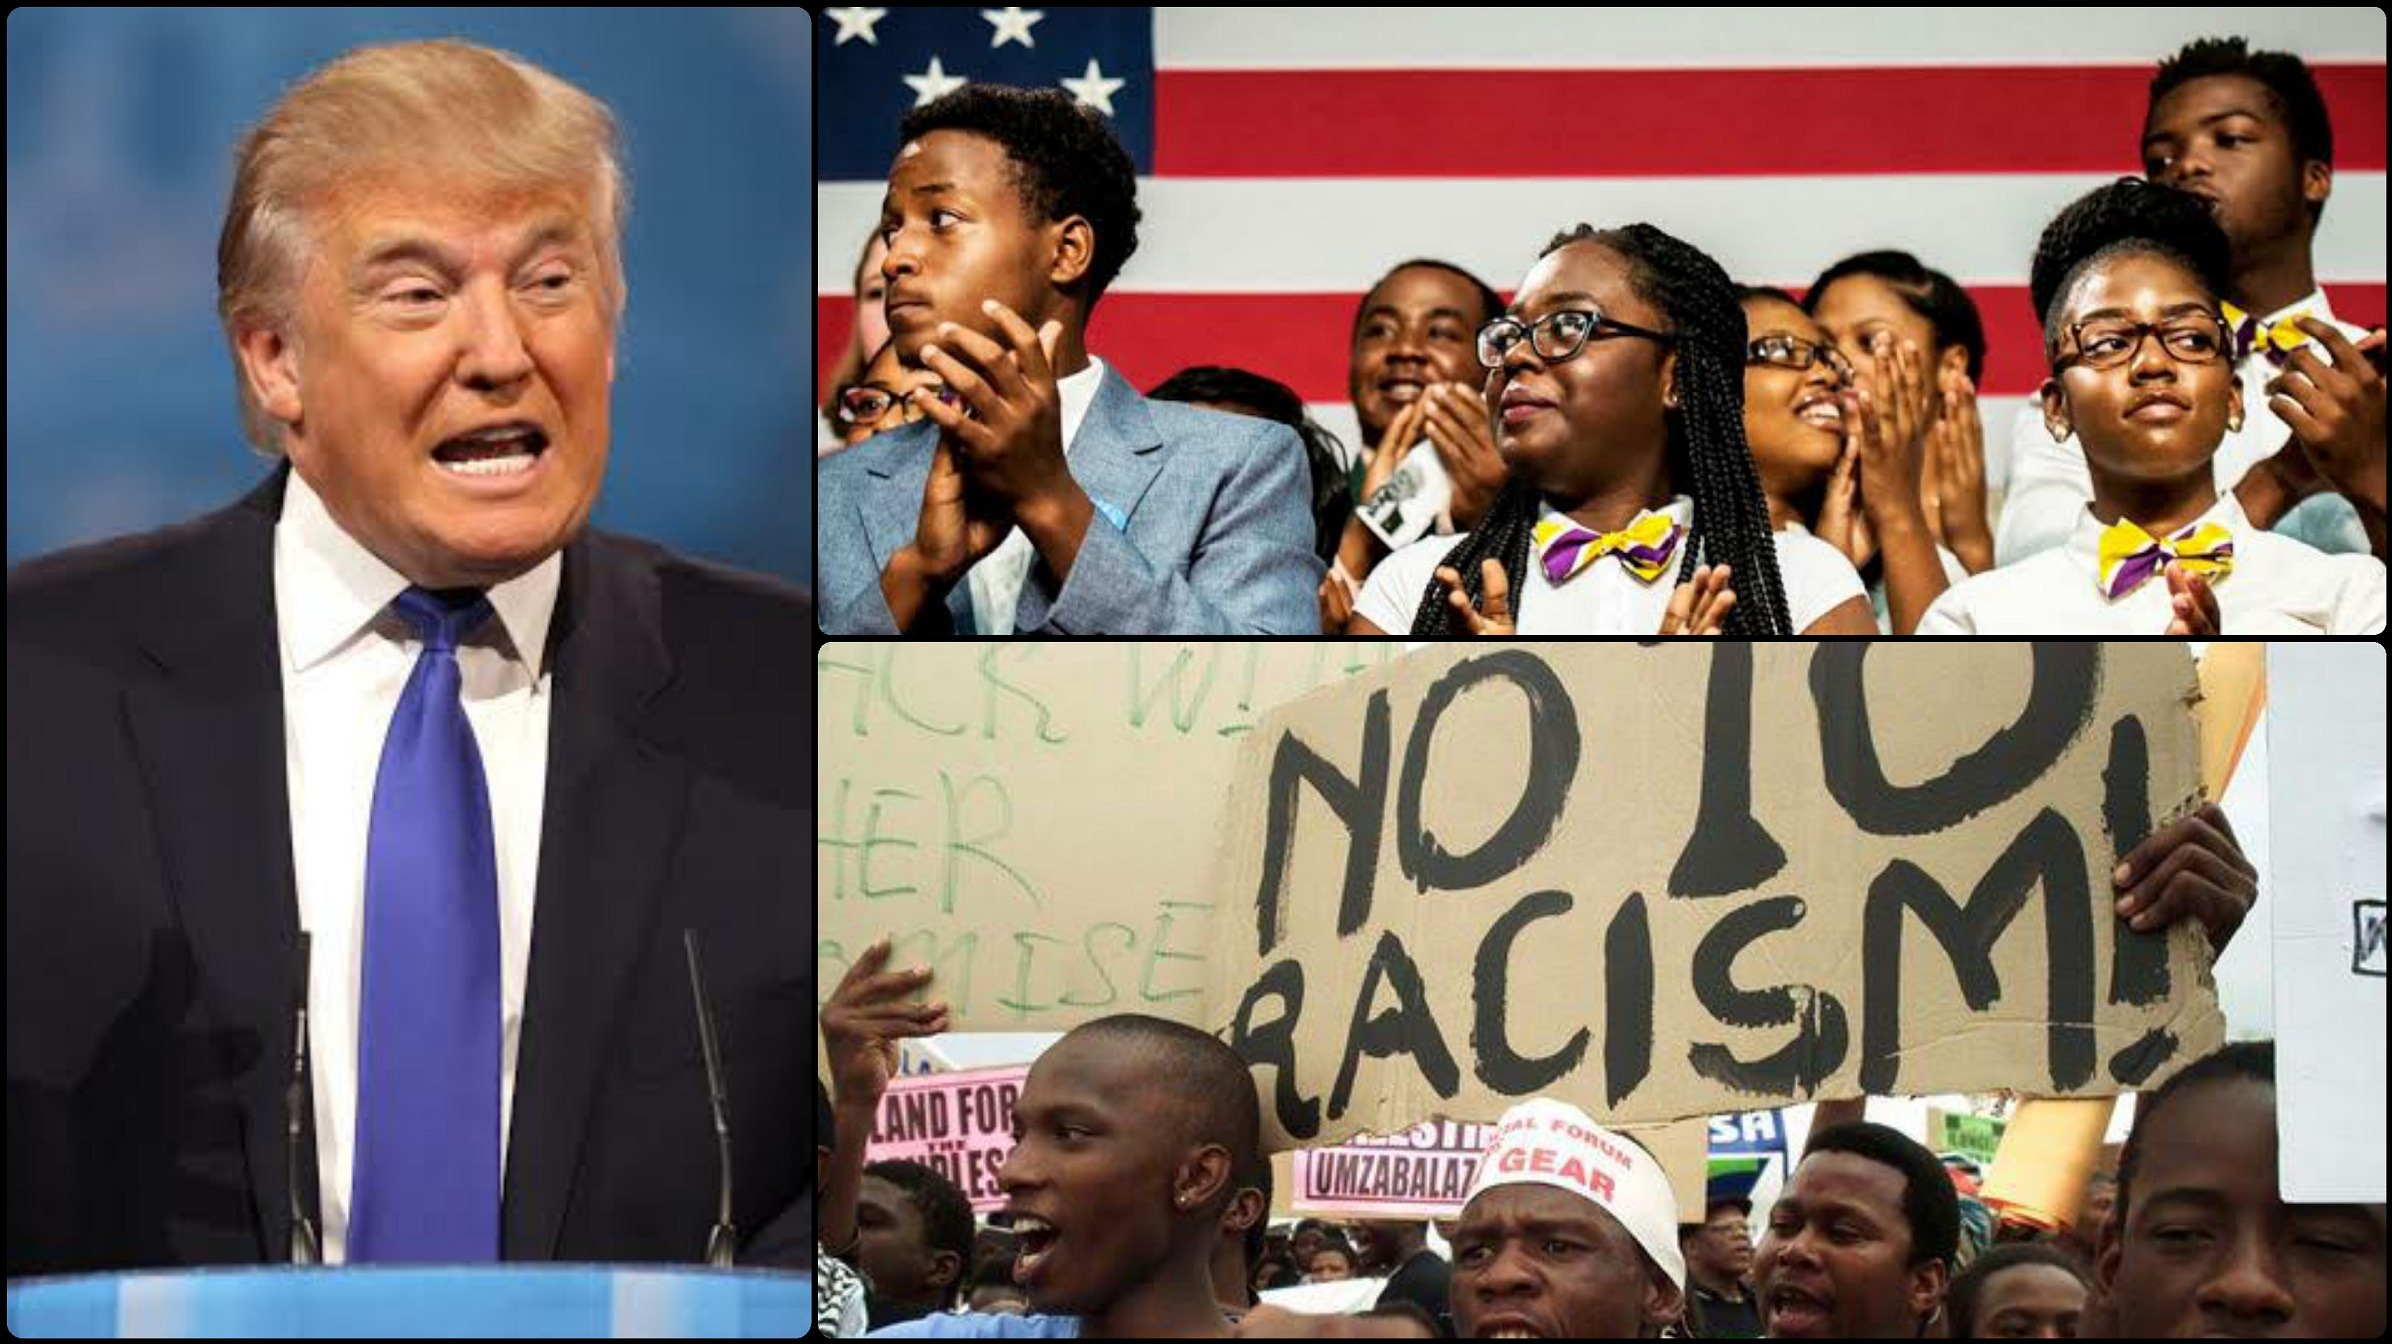 Sources Say That Trumps Racist Tweets May Violate The US Constitution 2